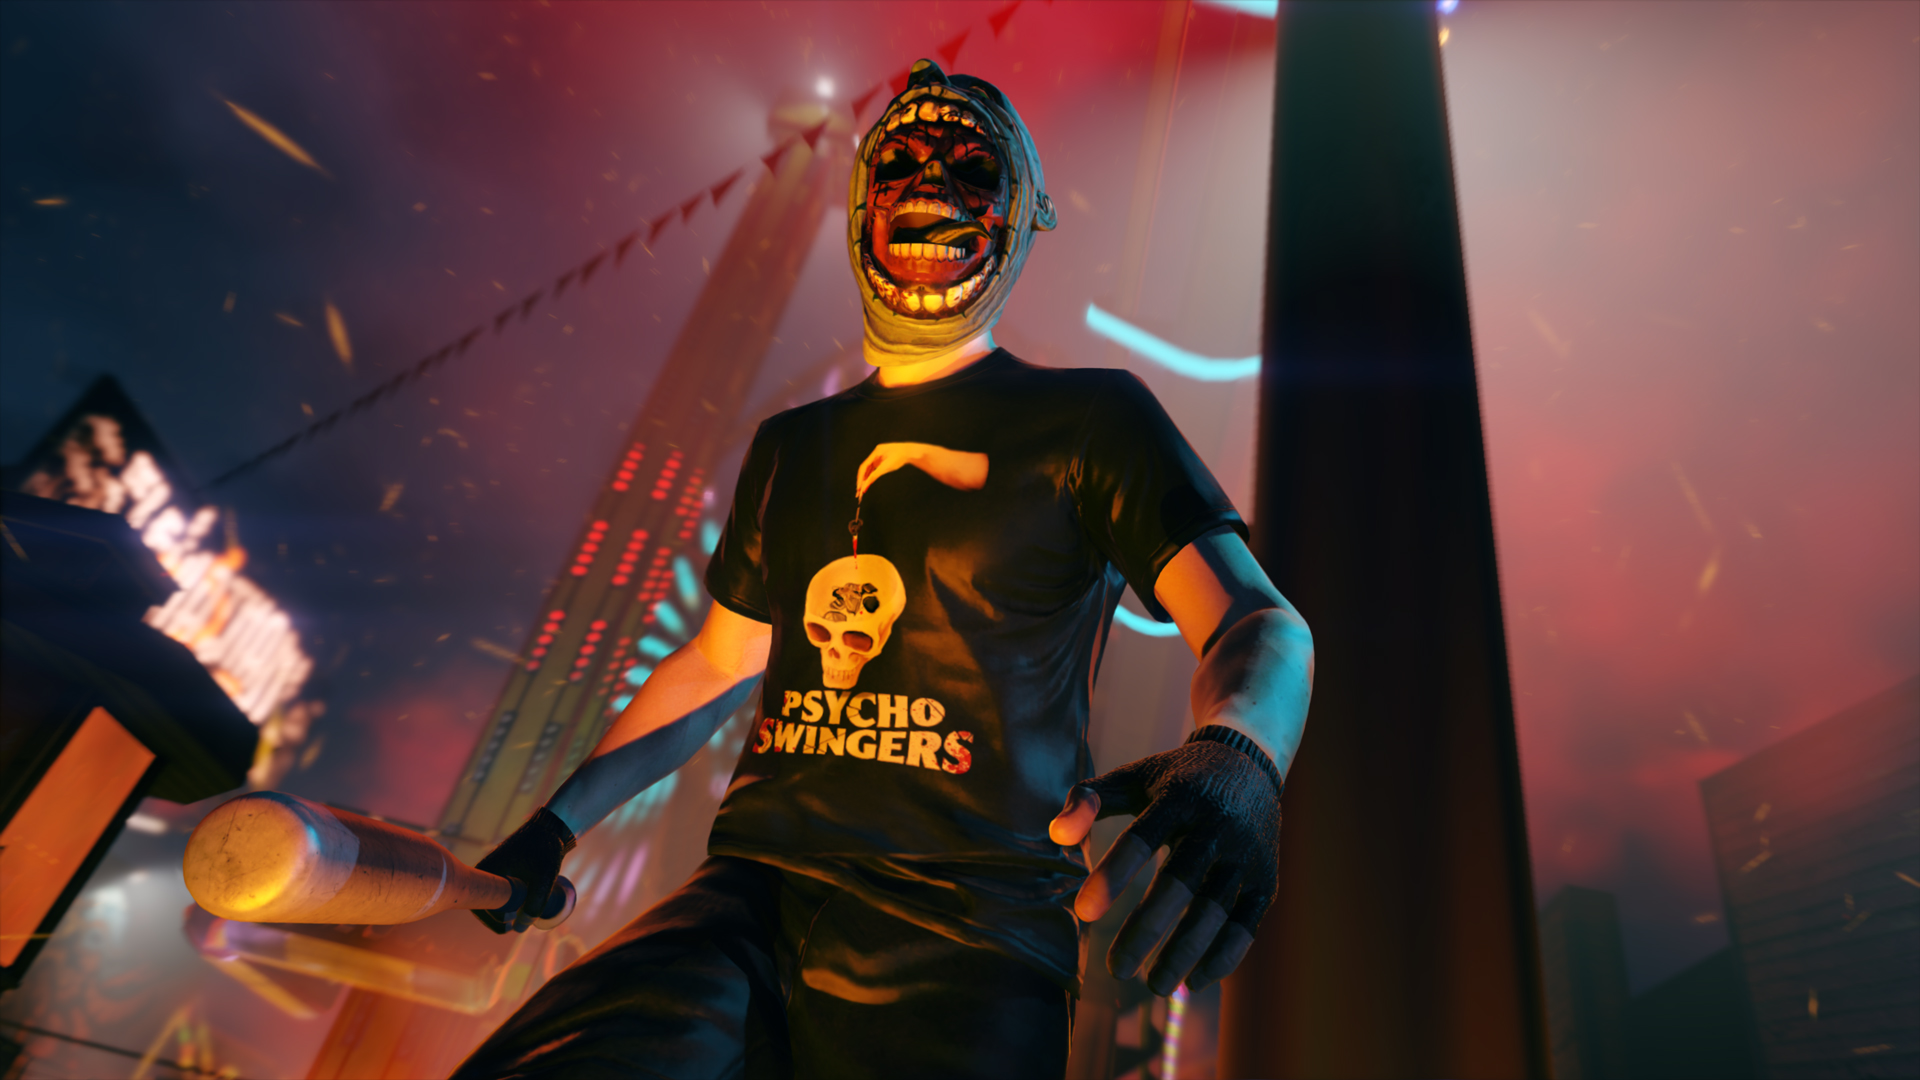 gta online celebrates halloween with double the goods on